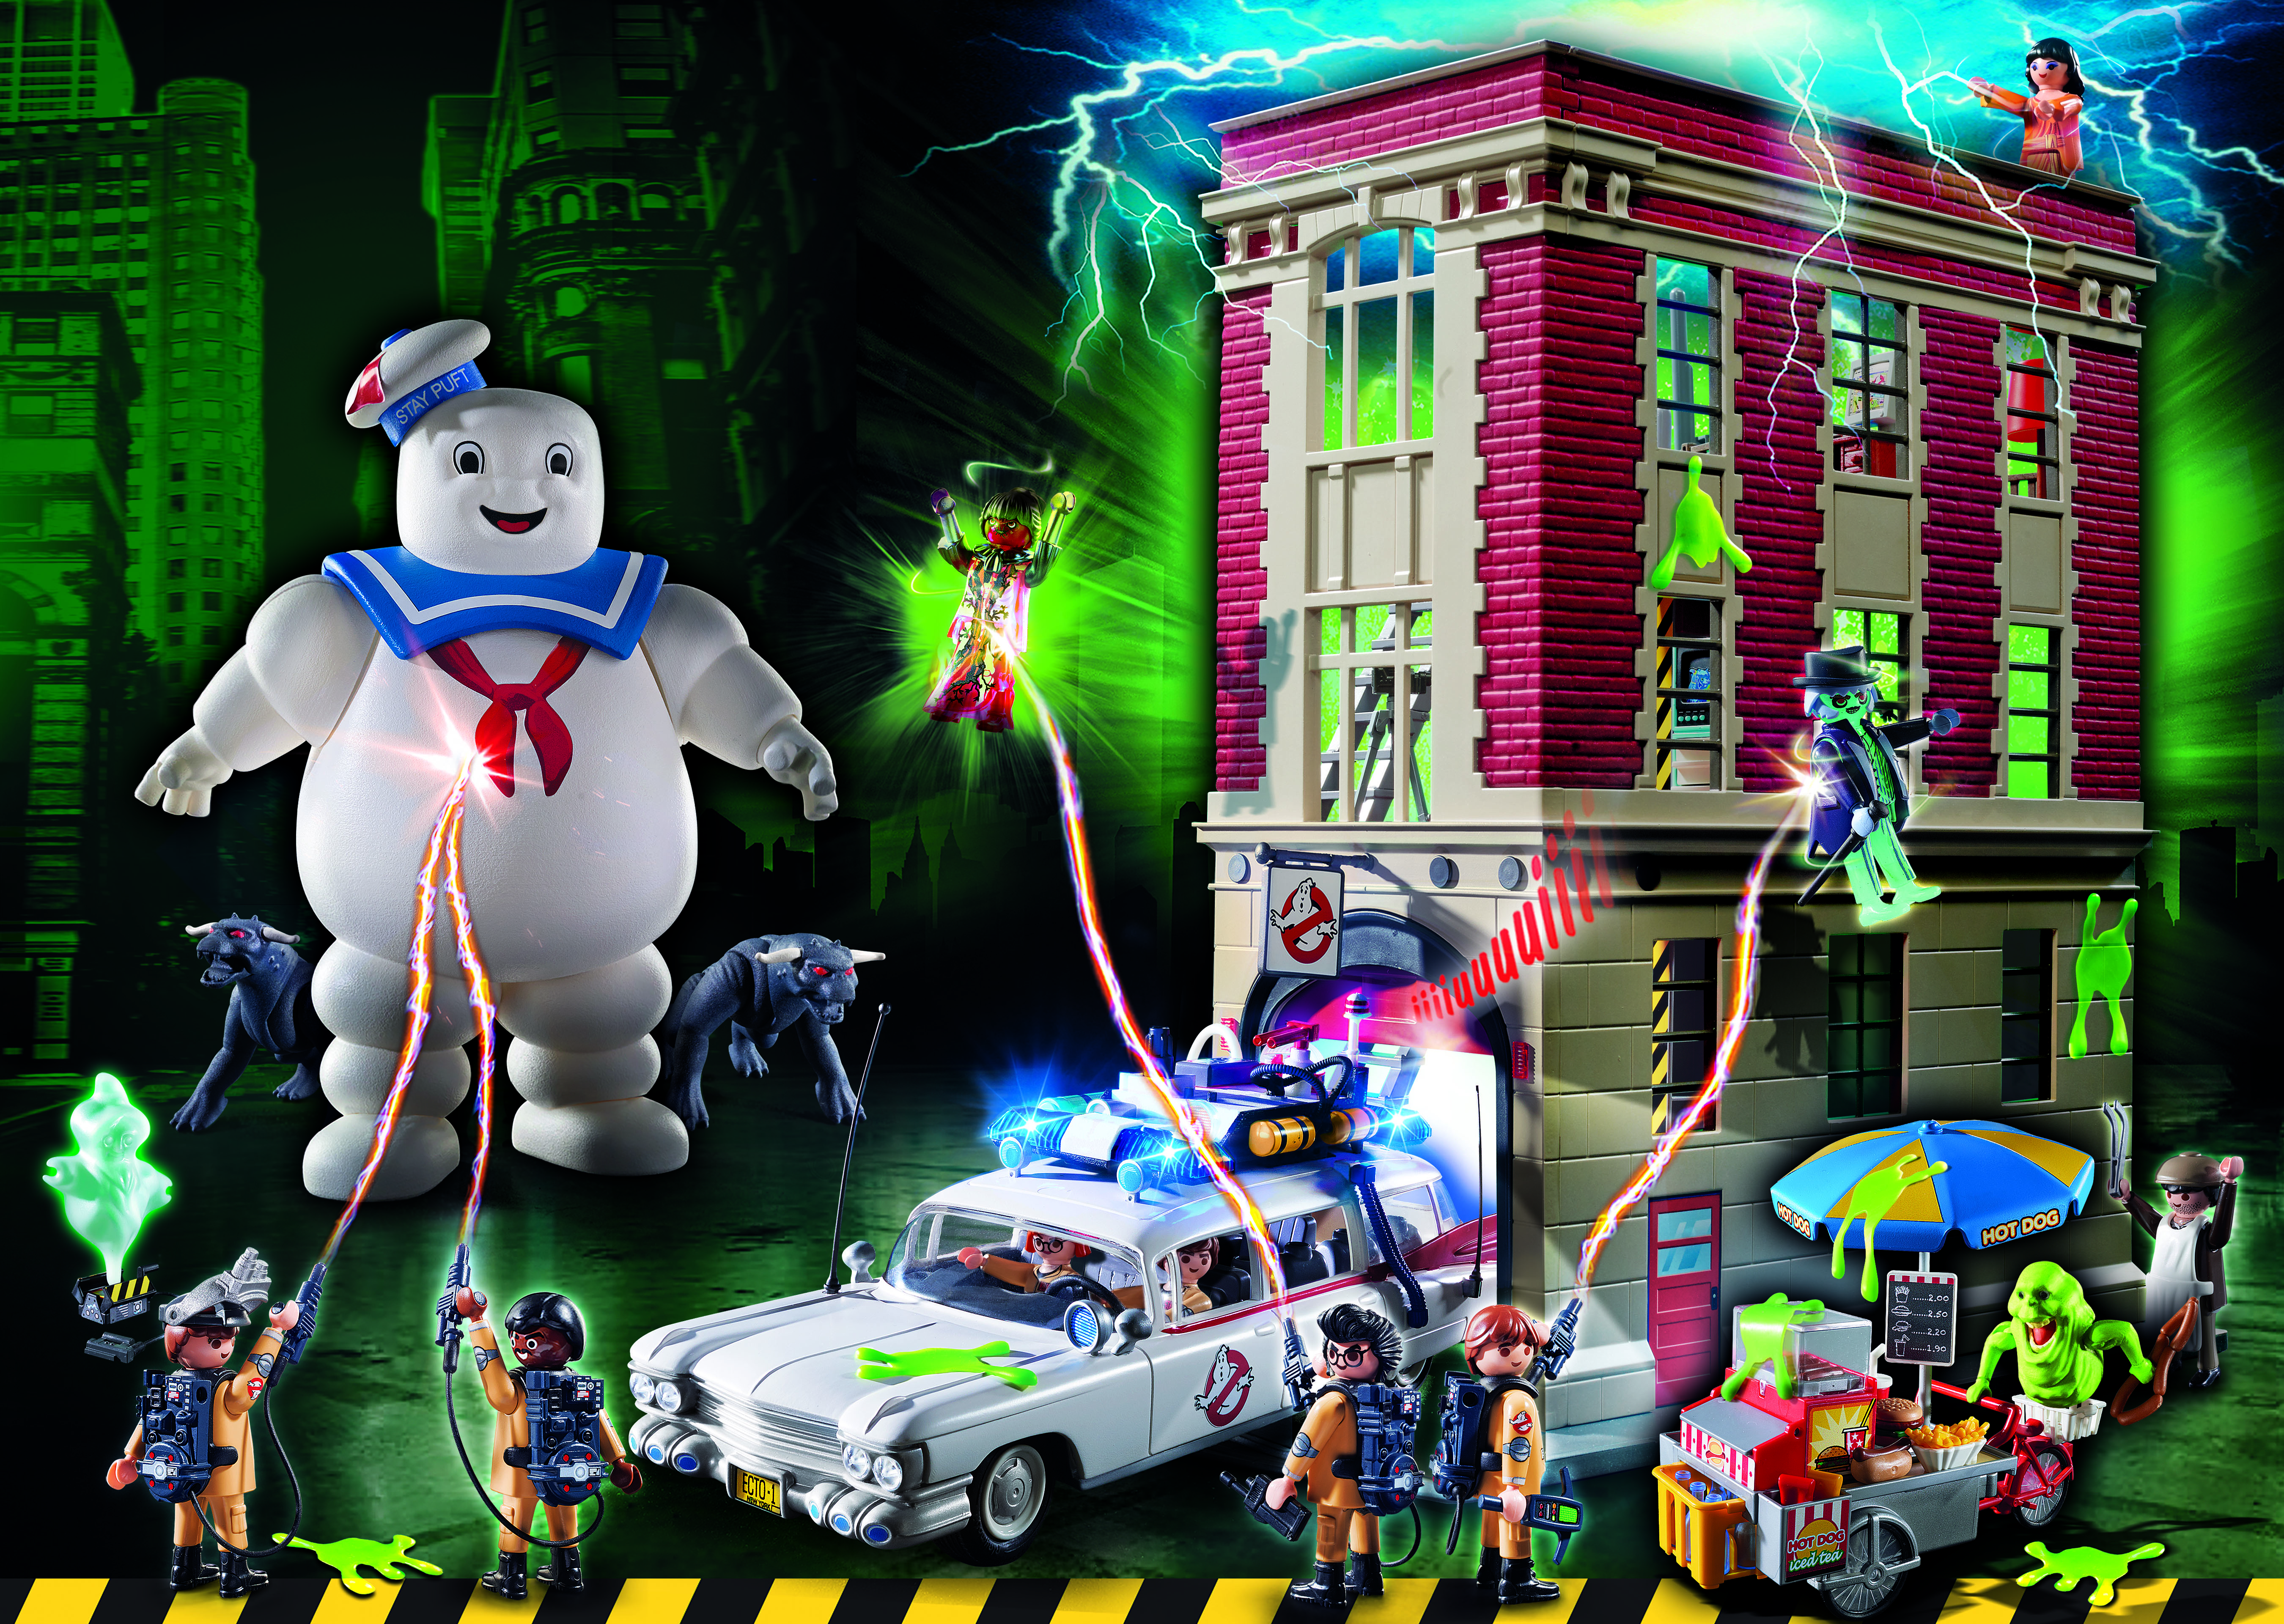 PLAYMOBIL Ghostbusters Playsets